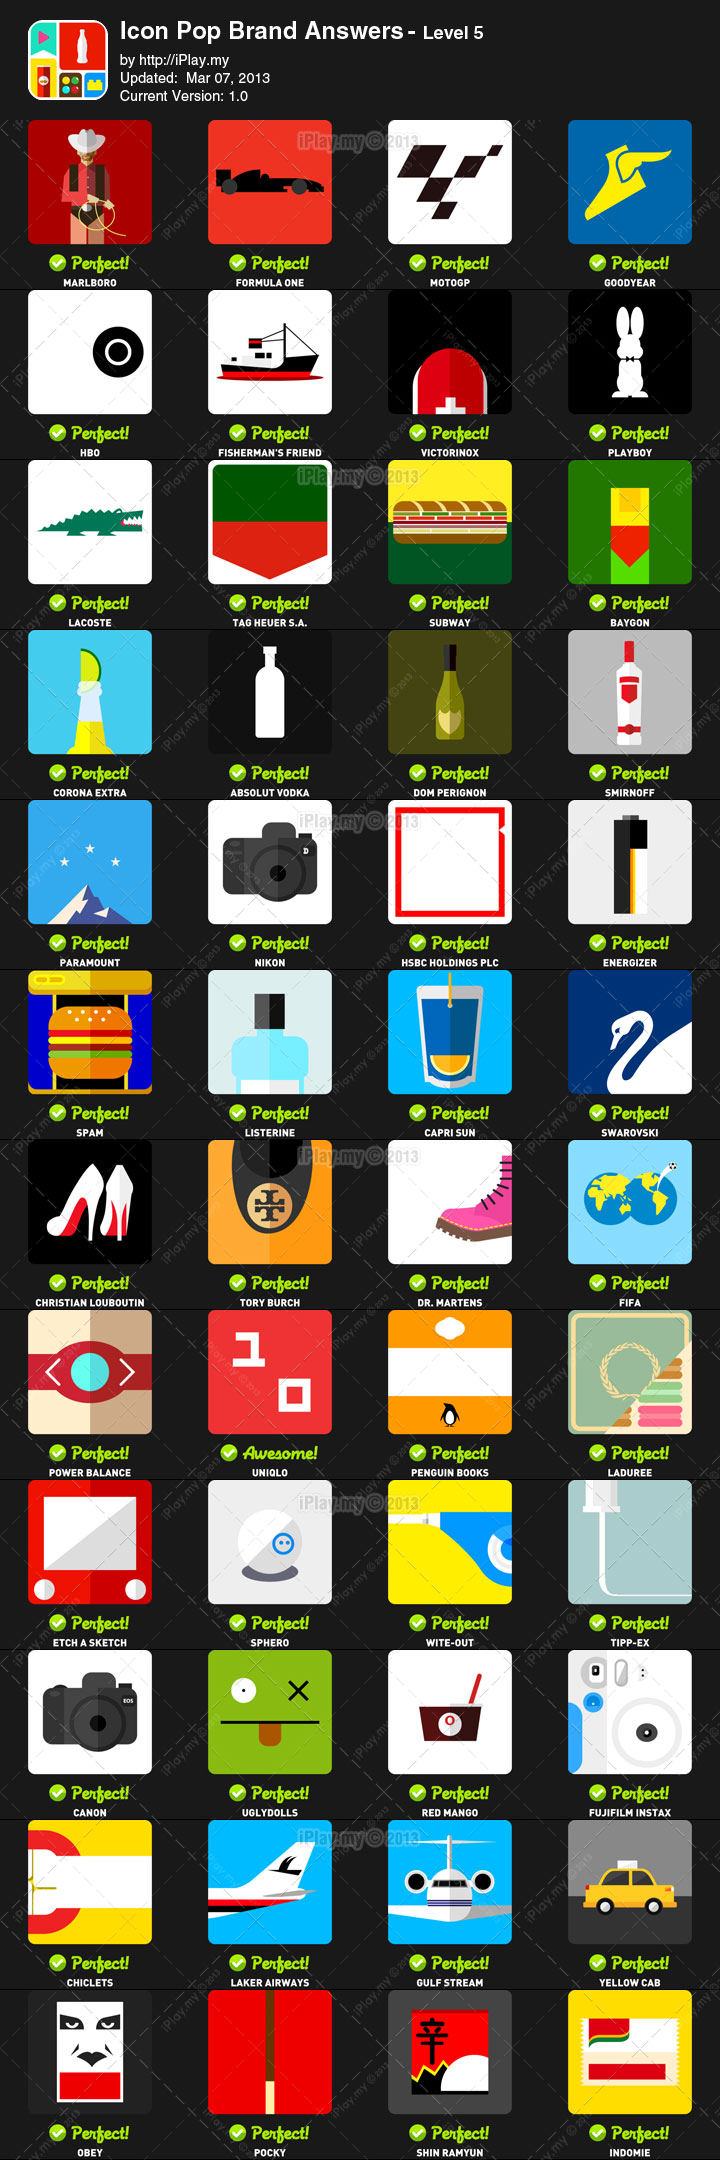 Icon Pop Brand Answers with Pictures